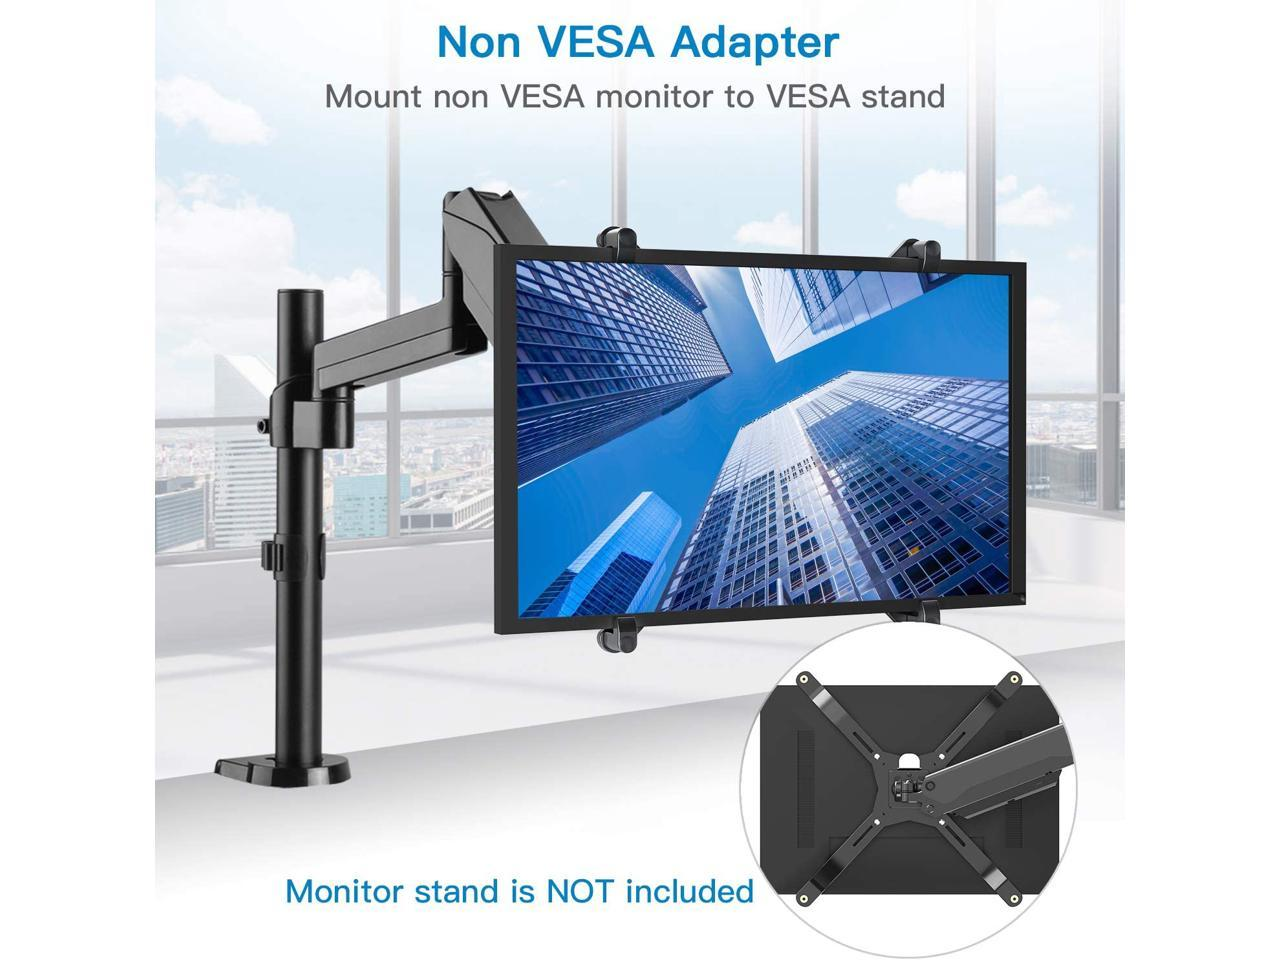 Existing Monitor Brackets Should with 75 mm VESA Plate HUANUO Non-VESA Adapter Monitor Arm Mounting Kit for 17-27 LED LCD OLED Screens without VESA Holes